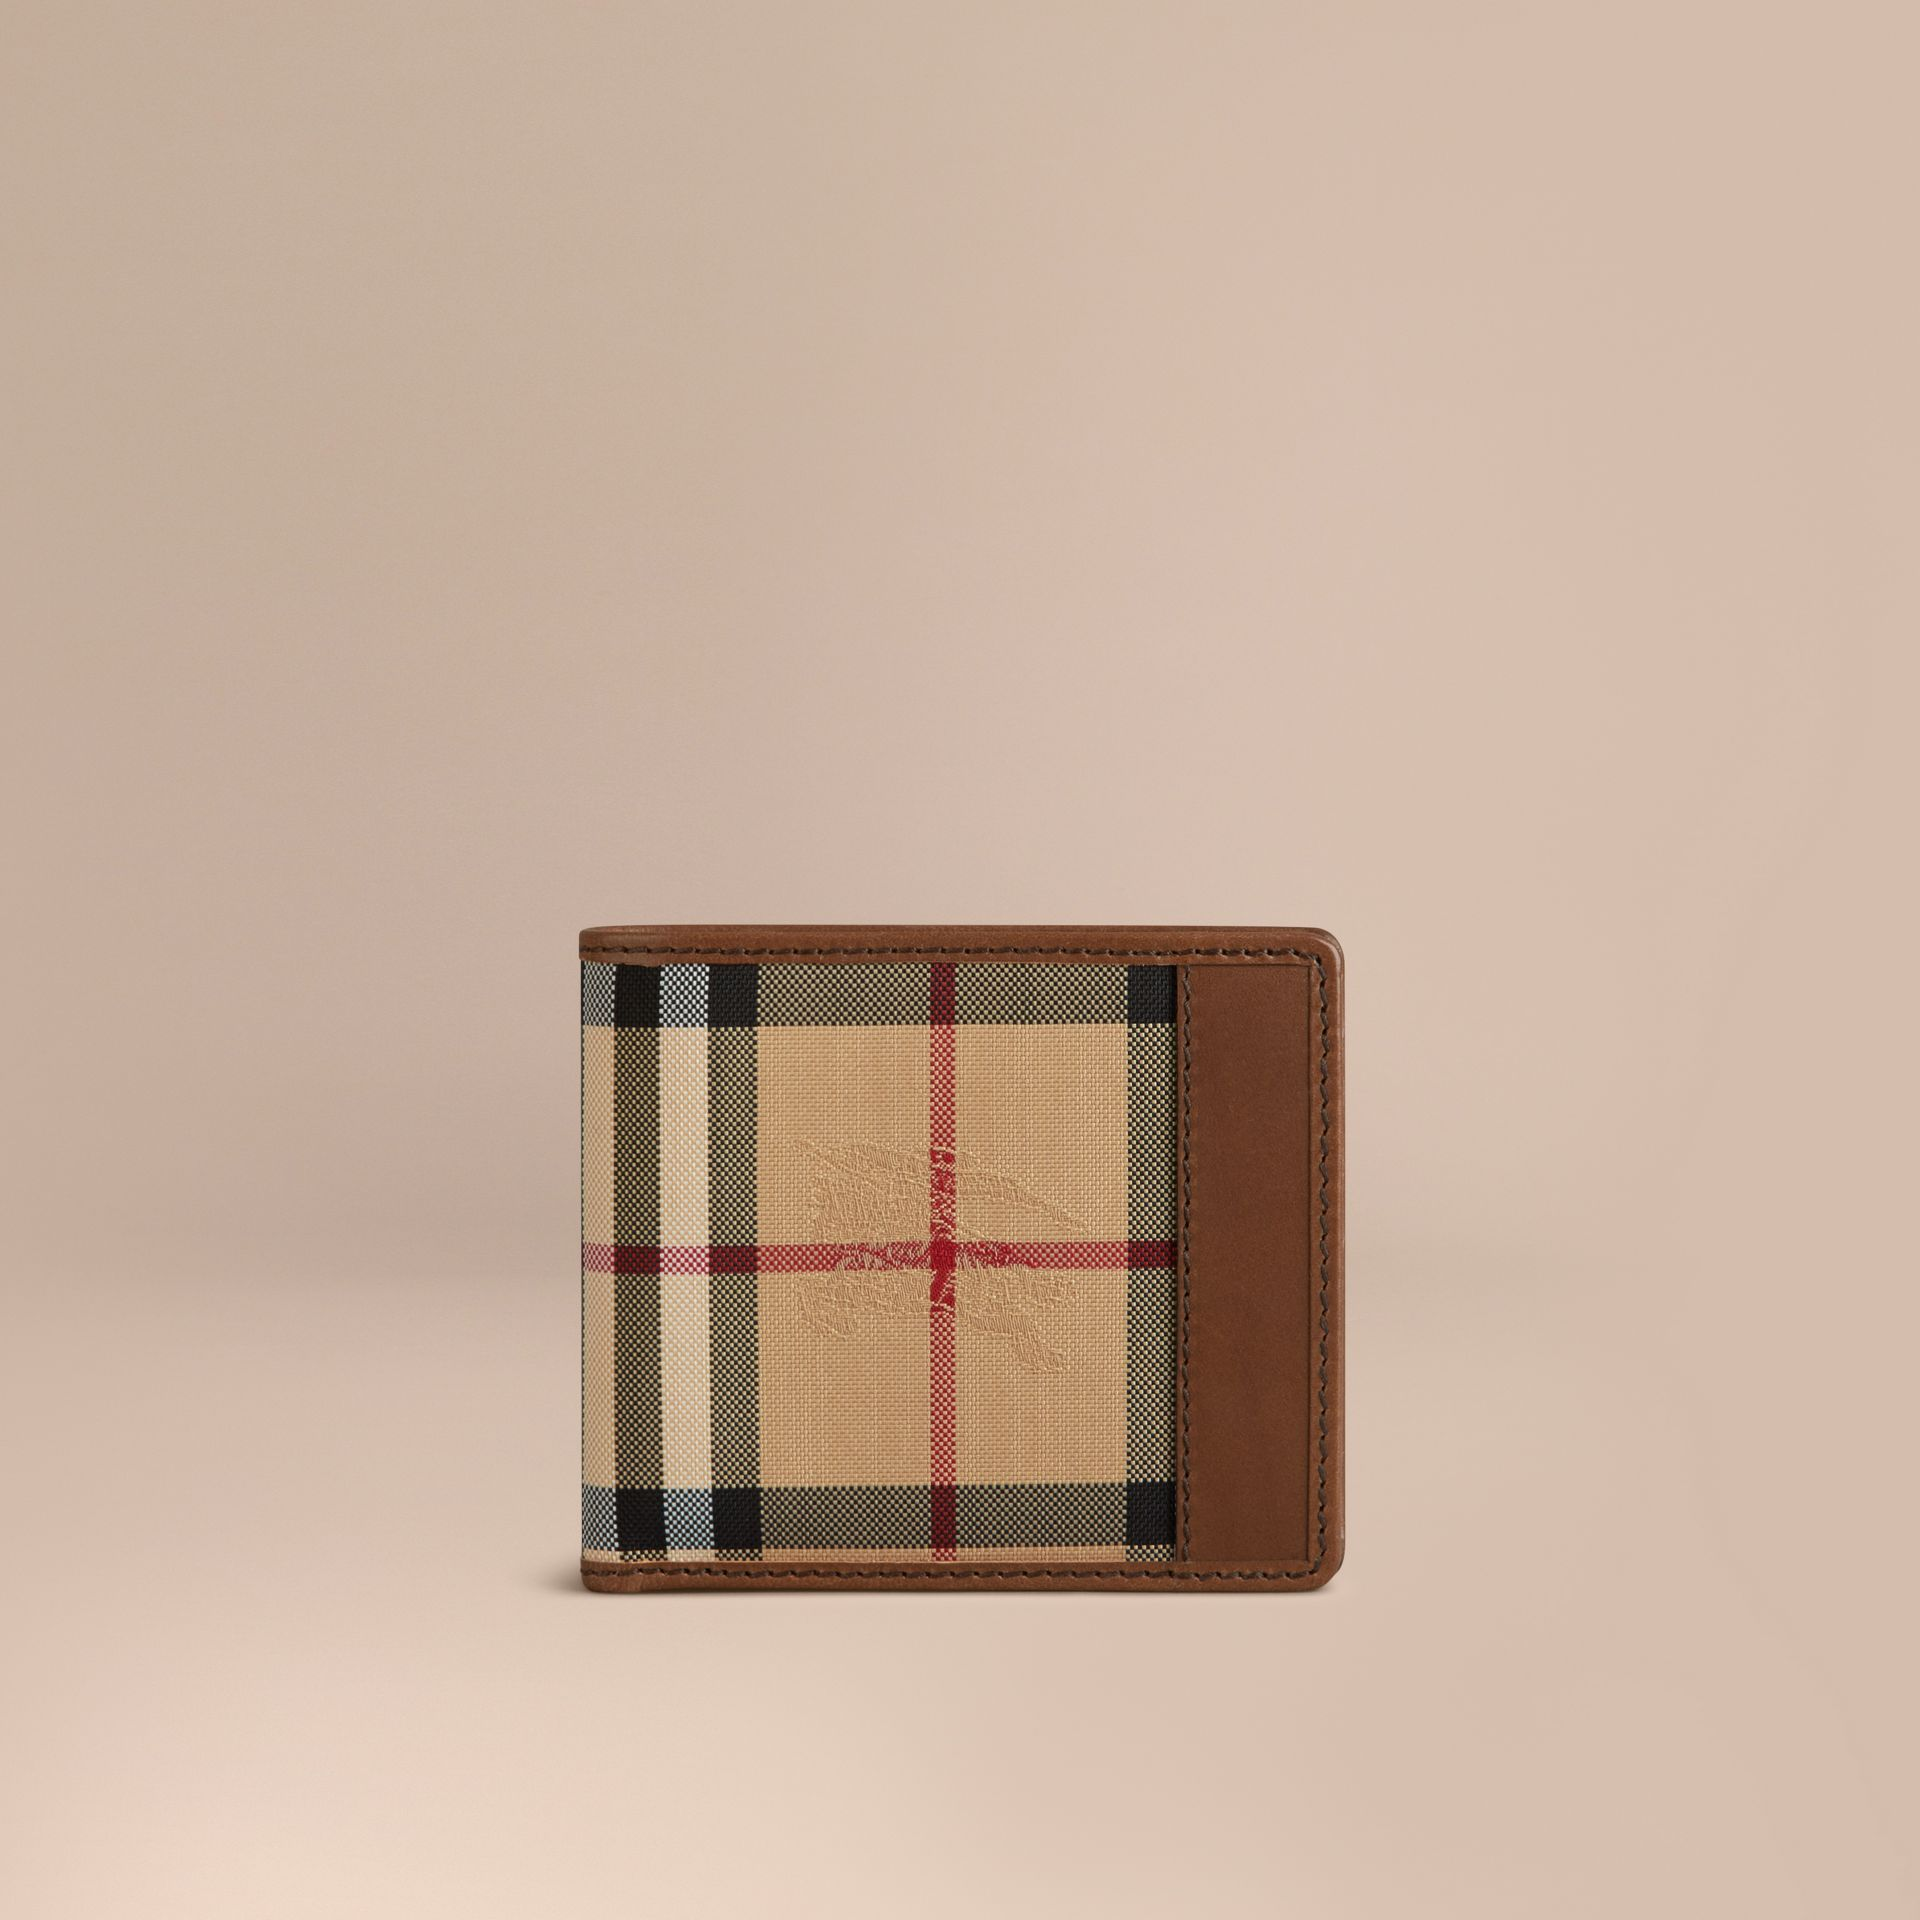 Horseferry Check International Bifold Wallet in Tan - gallery image 1